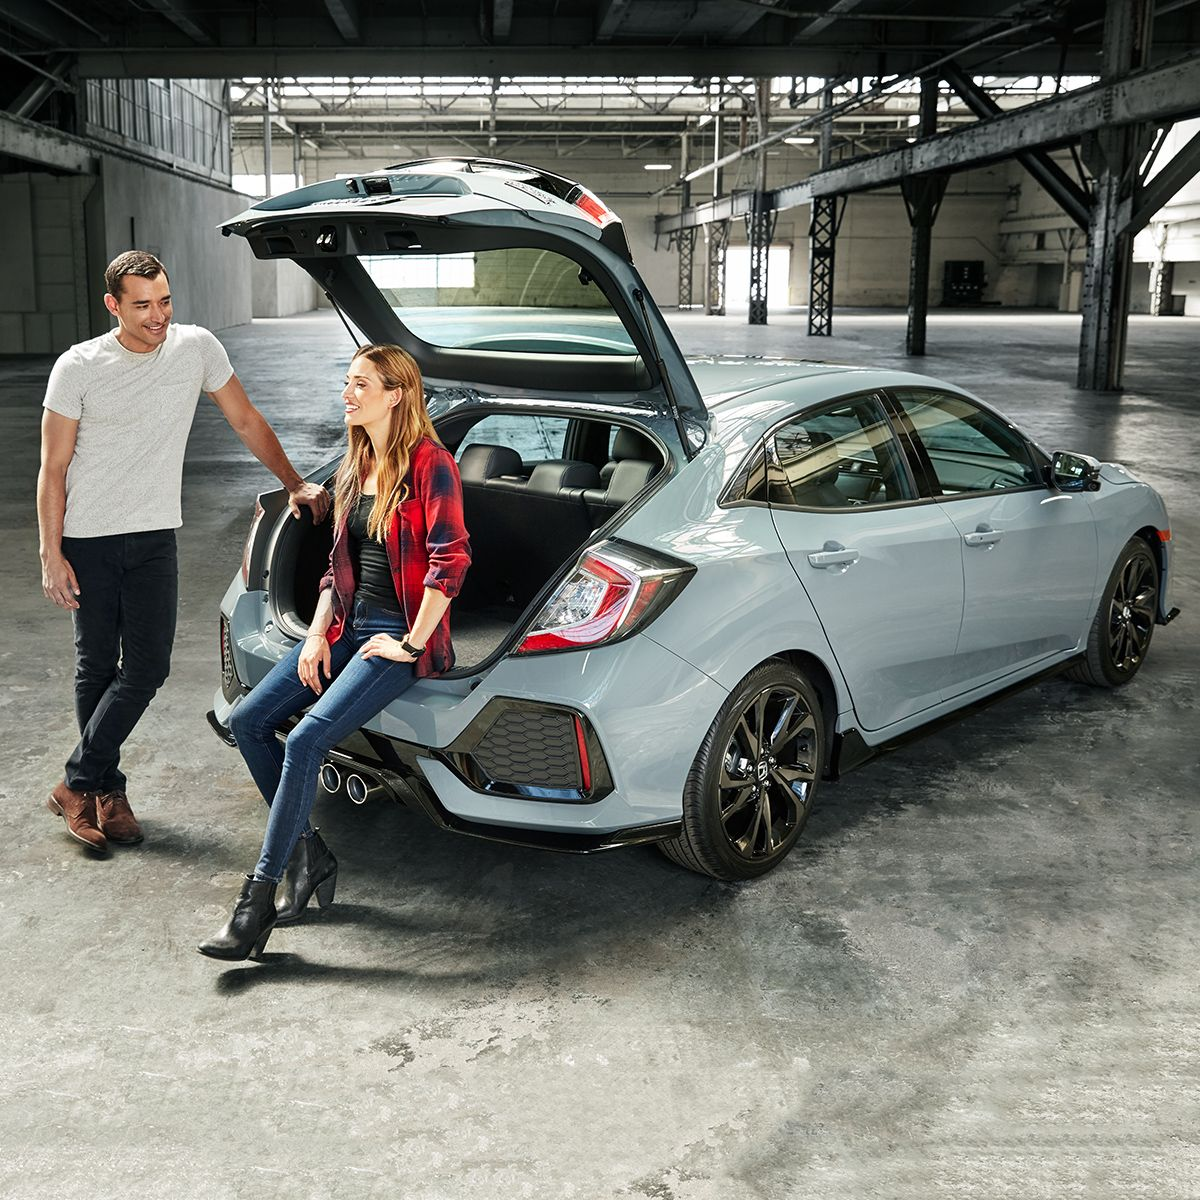 This Is Where Style Meets Utility. The Civic Hatchback